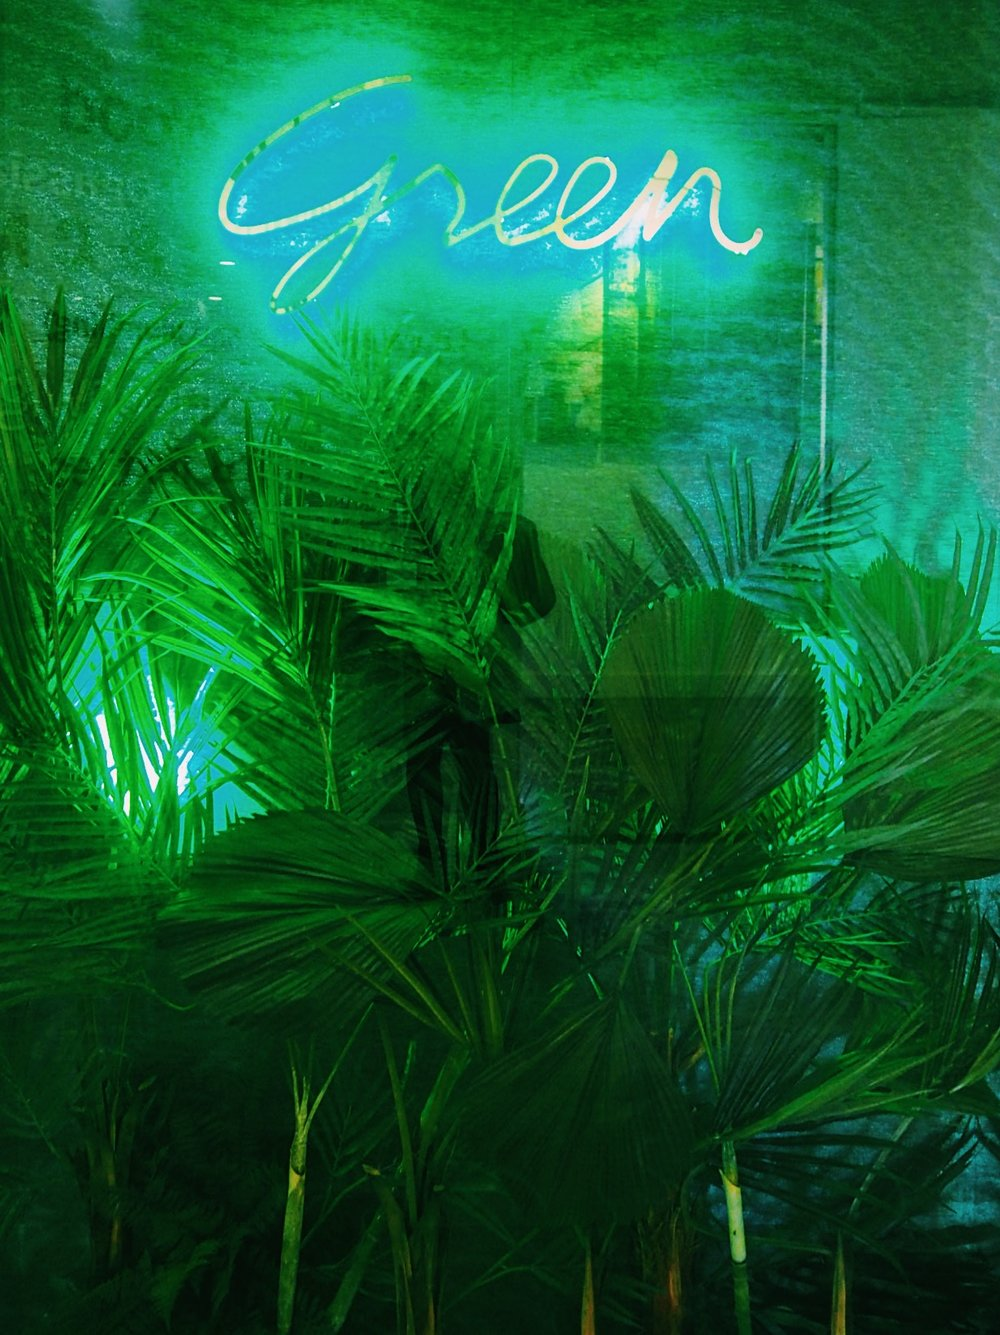 Neon Green artwork in the Design Centre East.